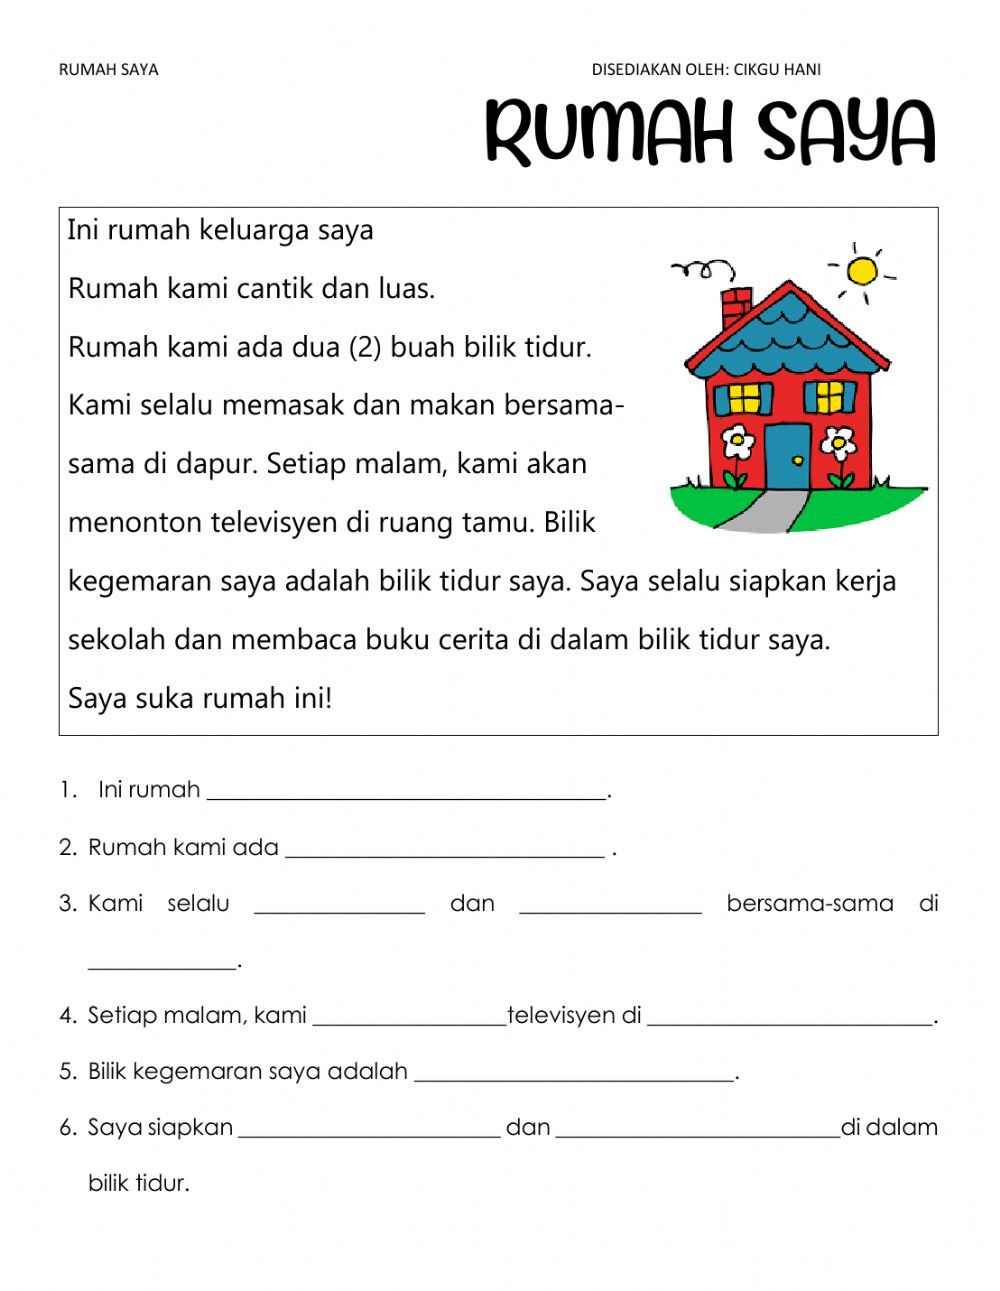 Pemahaman Online Worksheet For Beginner You Can Do The Exercises Online Or Download The Worksheet As P In 2021 Preschool Letters Microsoft Office Word English Lessons